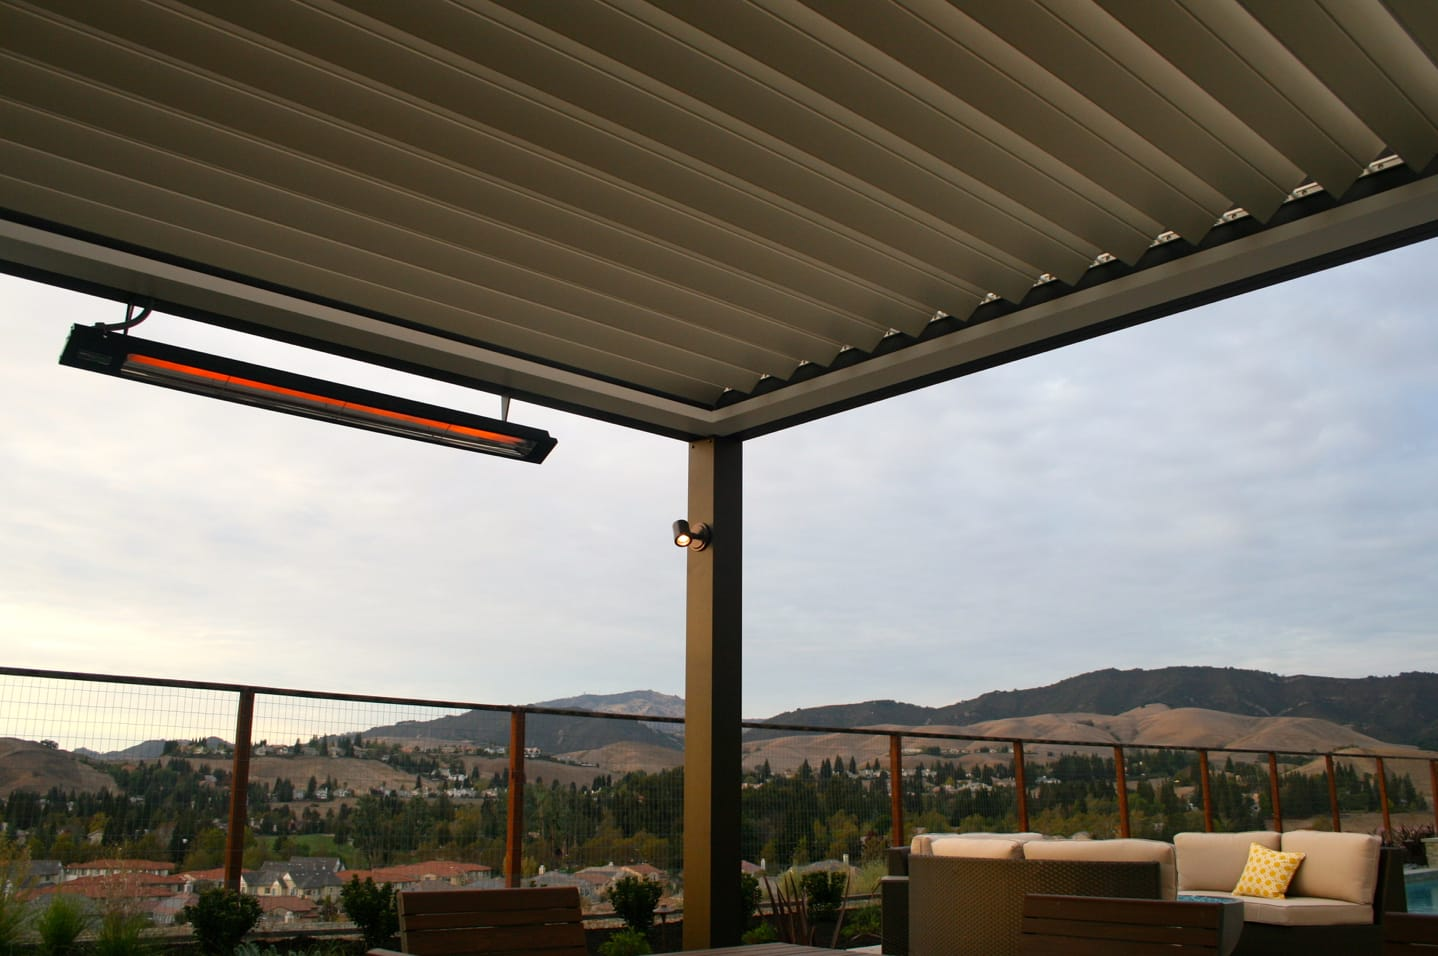 Alumashade DIY Adjustable Patio Cover